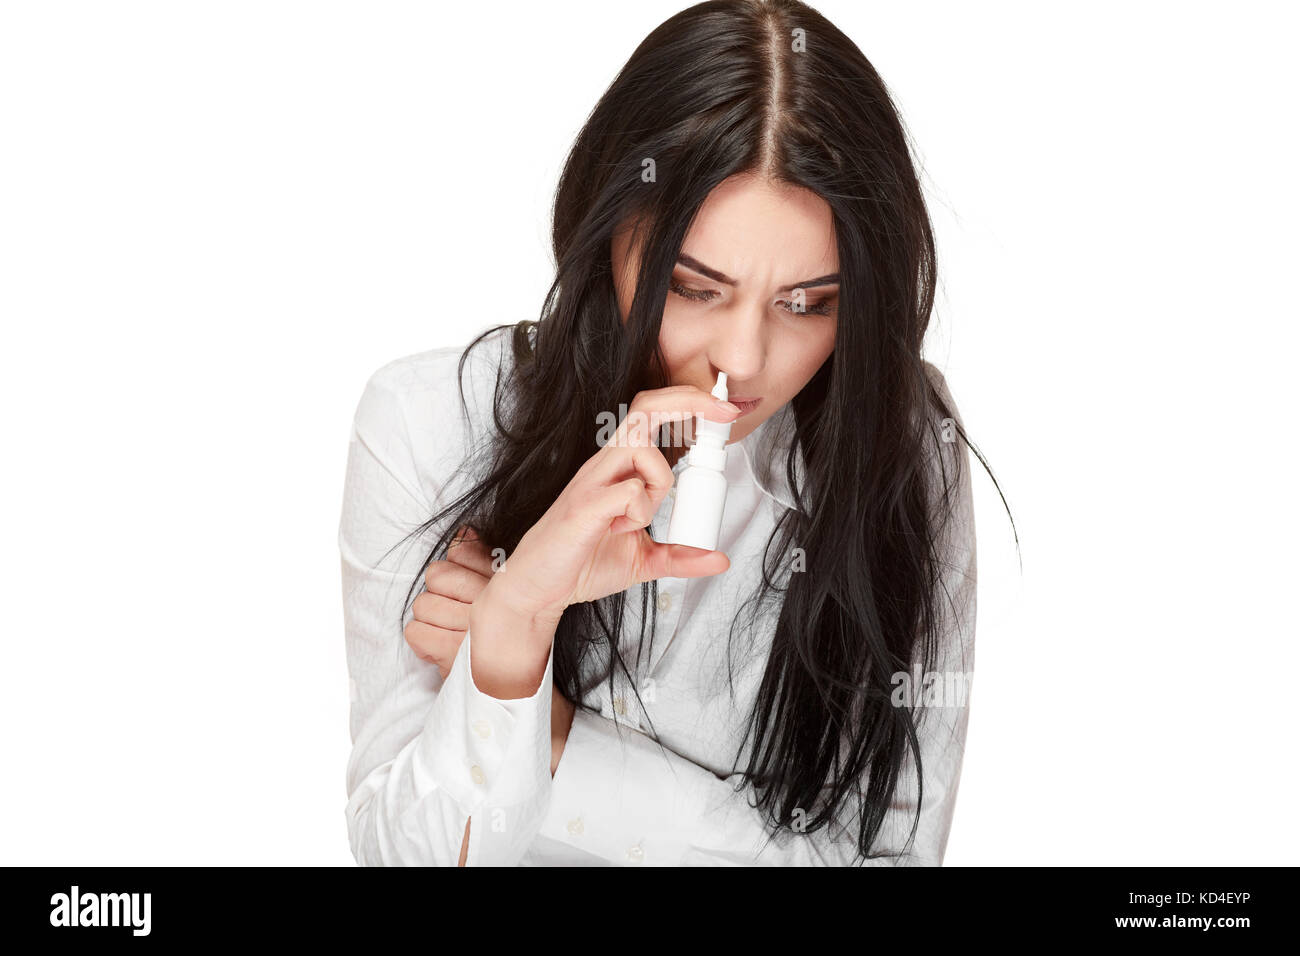 Portrait of unhealthy brunette girl using and drown spray for nose, anti virus, flu medicament. Illness,virus, respiration - Stock Image